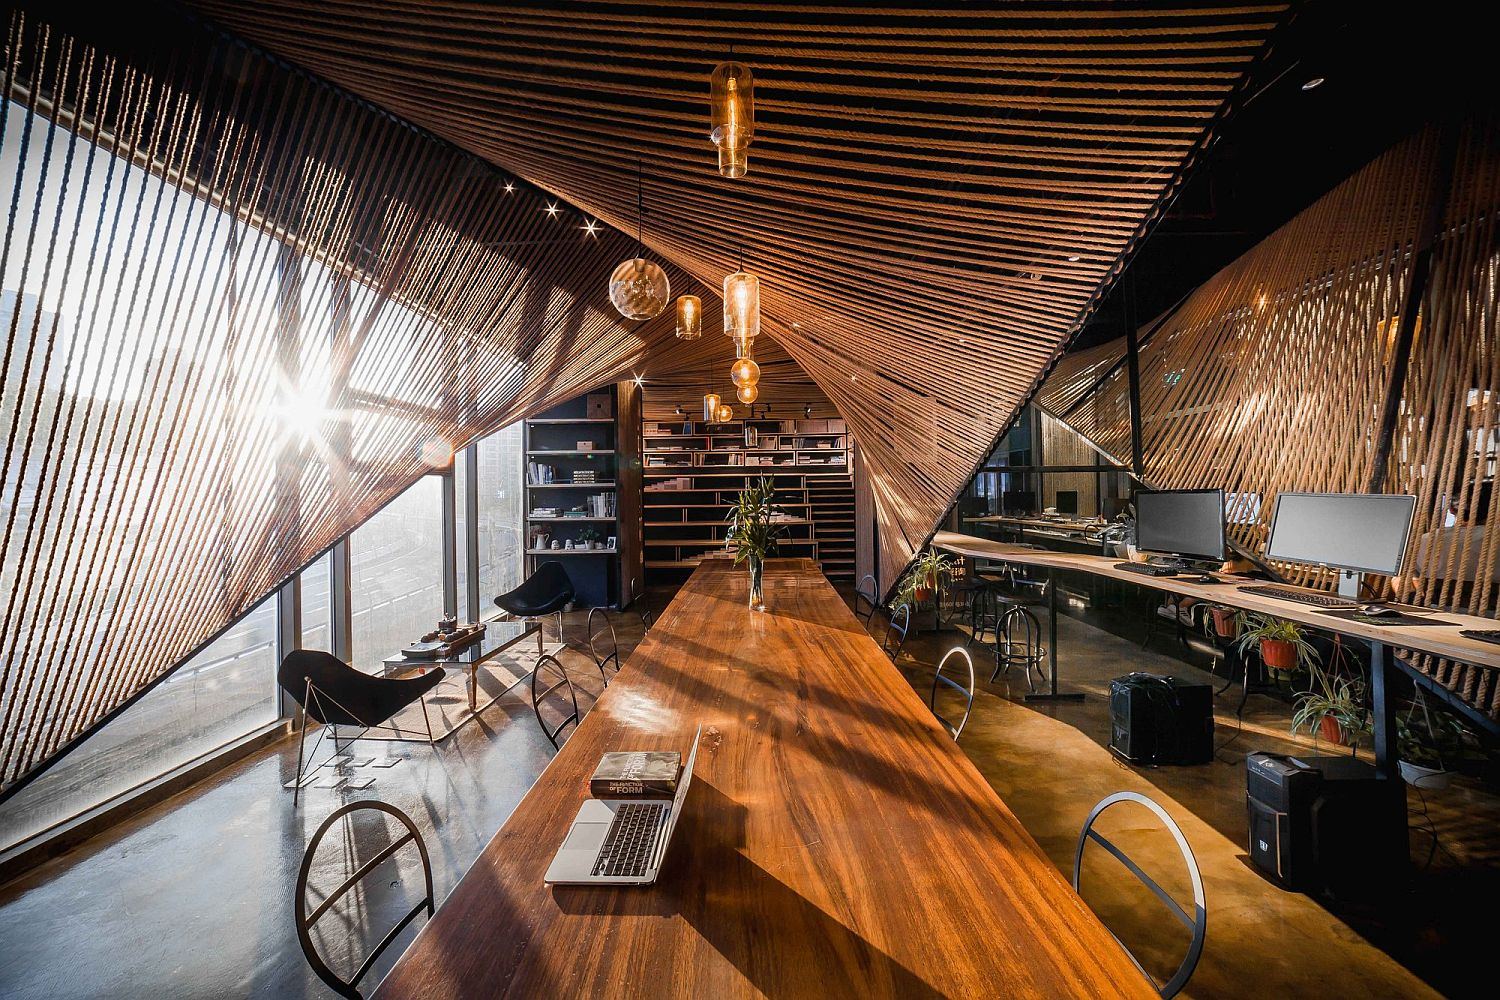 Rope in the form of waves creates a unique interior inside the office